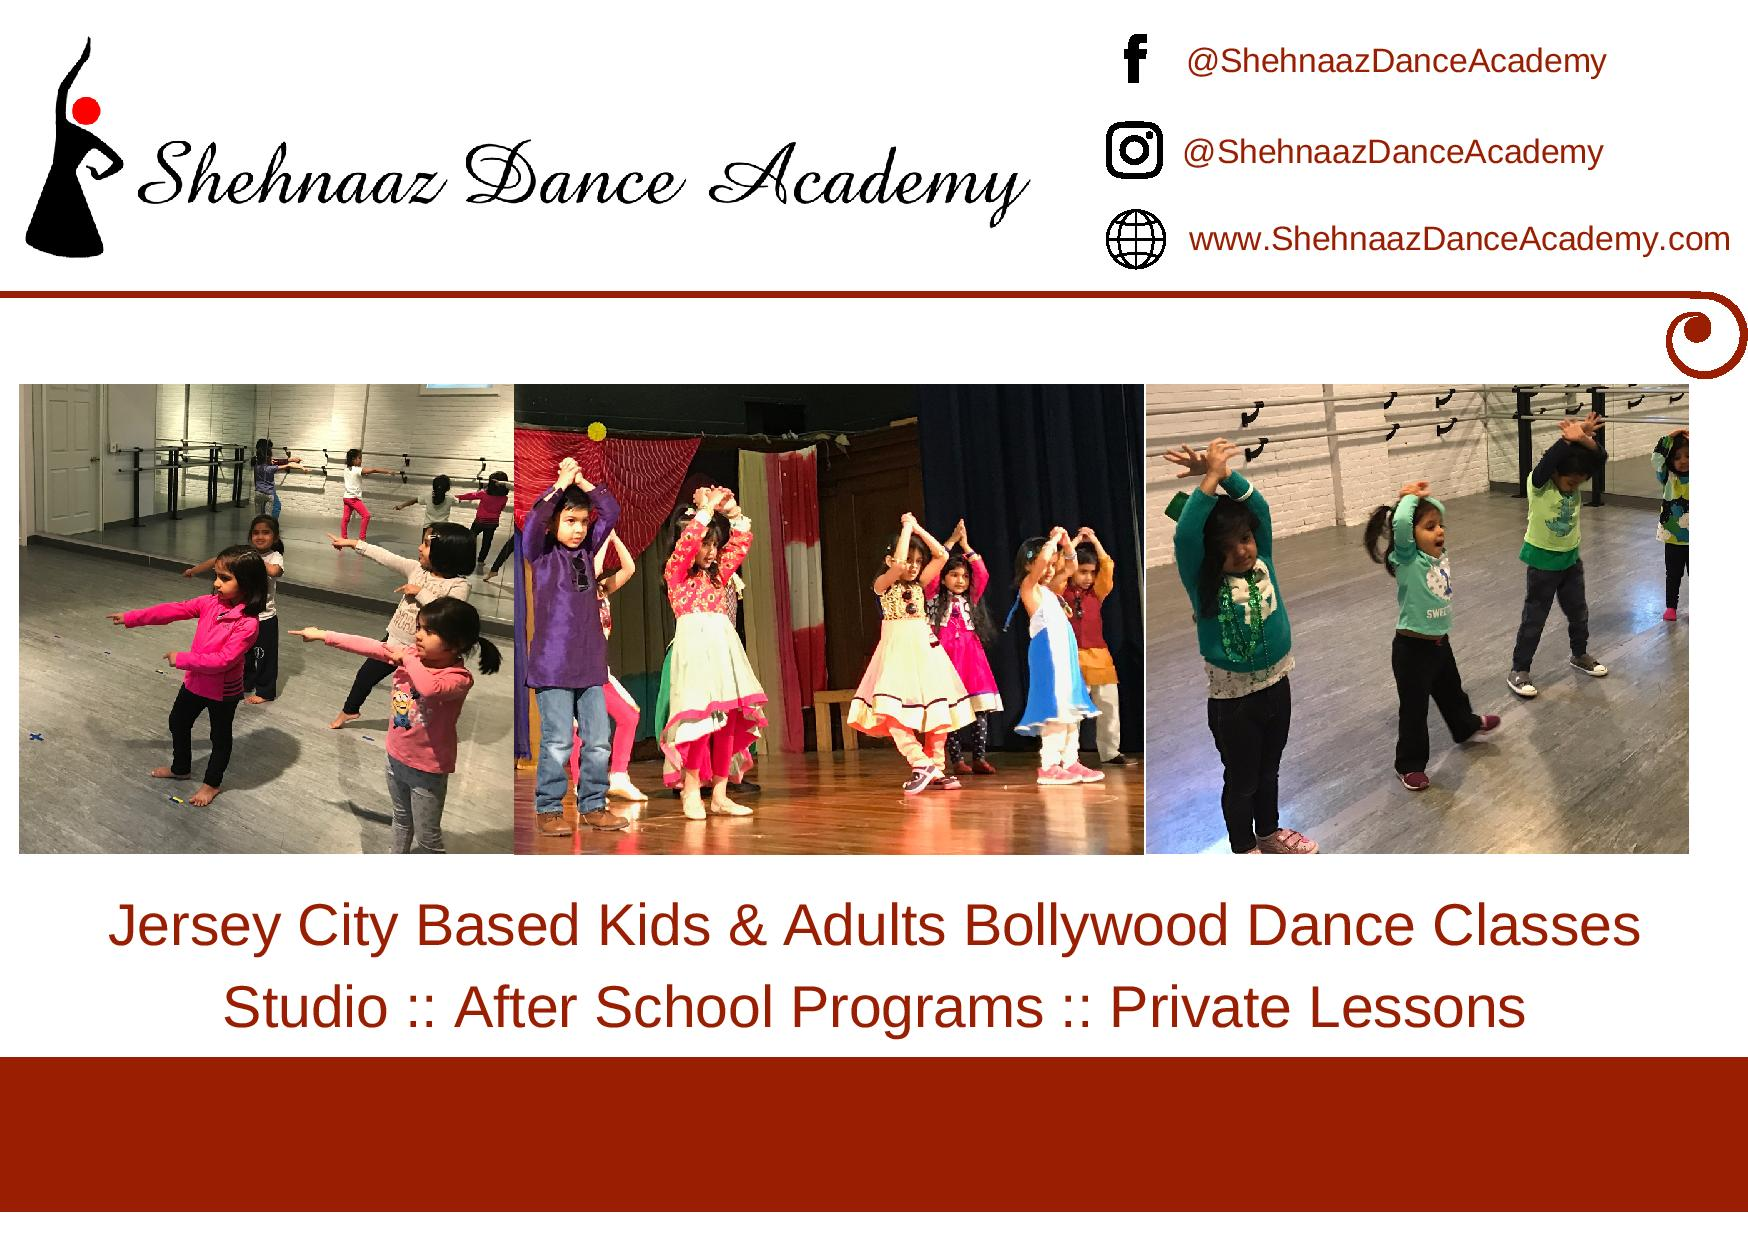 10 Bollywood Classes for all ages!